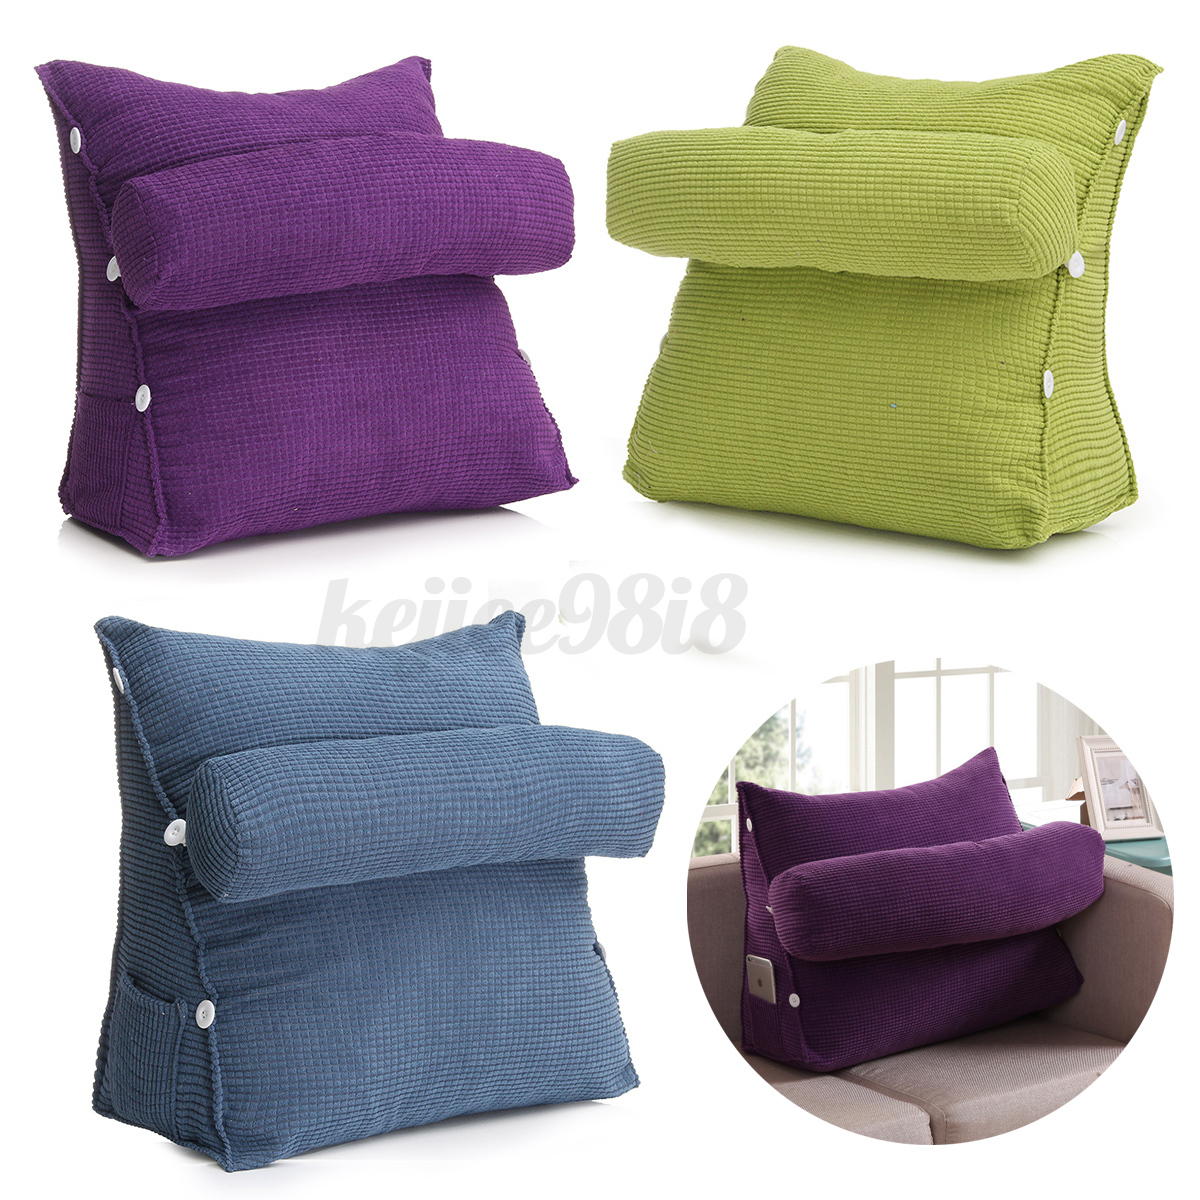 Bed Chair Pillow Adjustable Back Wedge Cushion Pillow Sofa Bed Office Chair